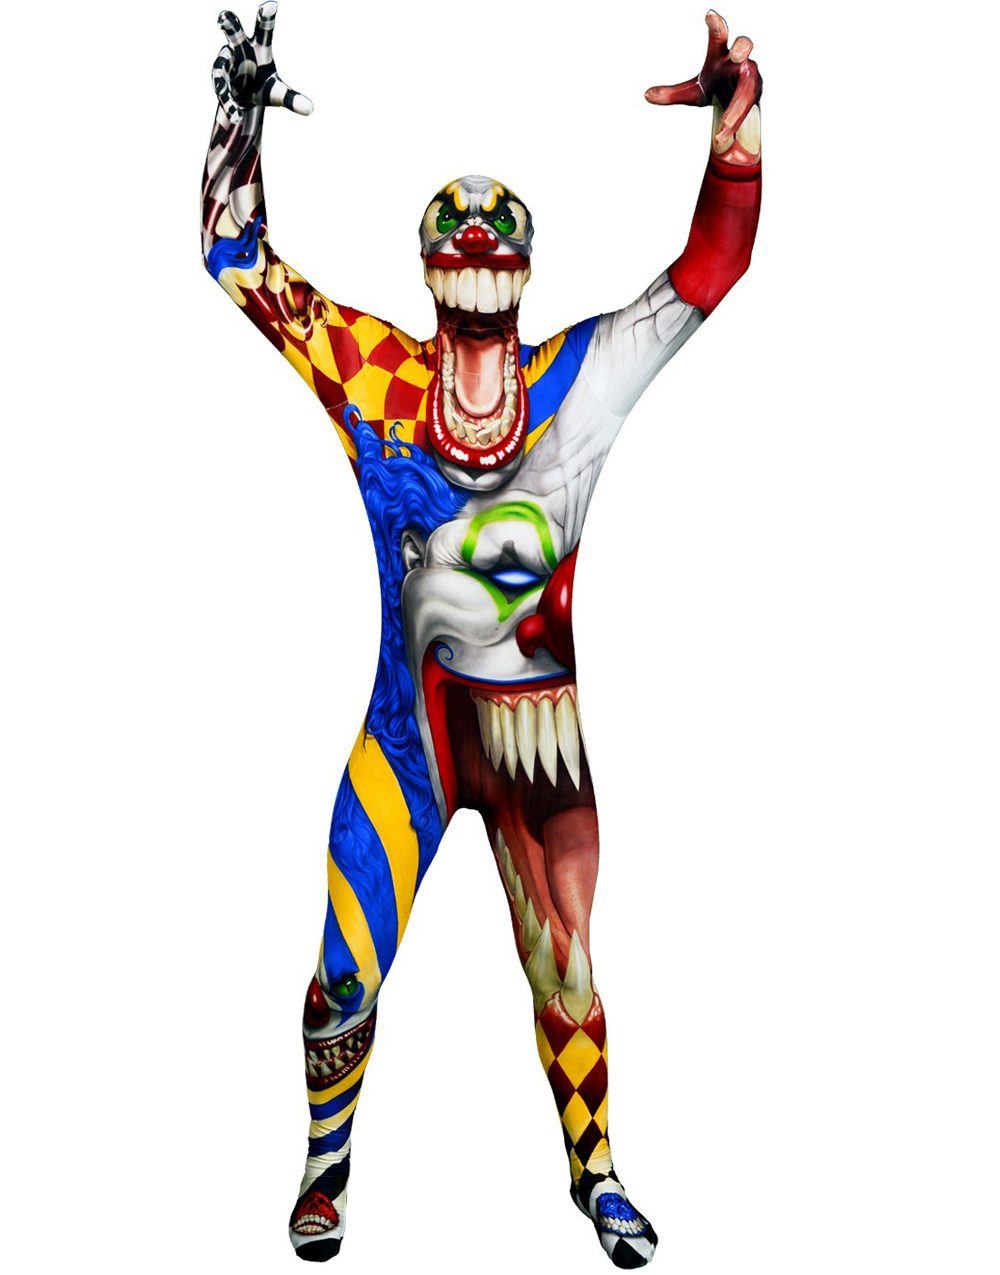 Limited Edition! The Morph Monster Collection - The Scary Clown Original Morphsuit